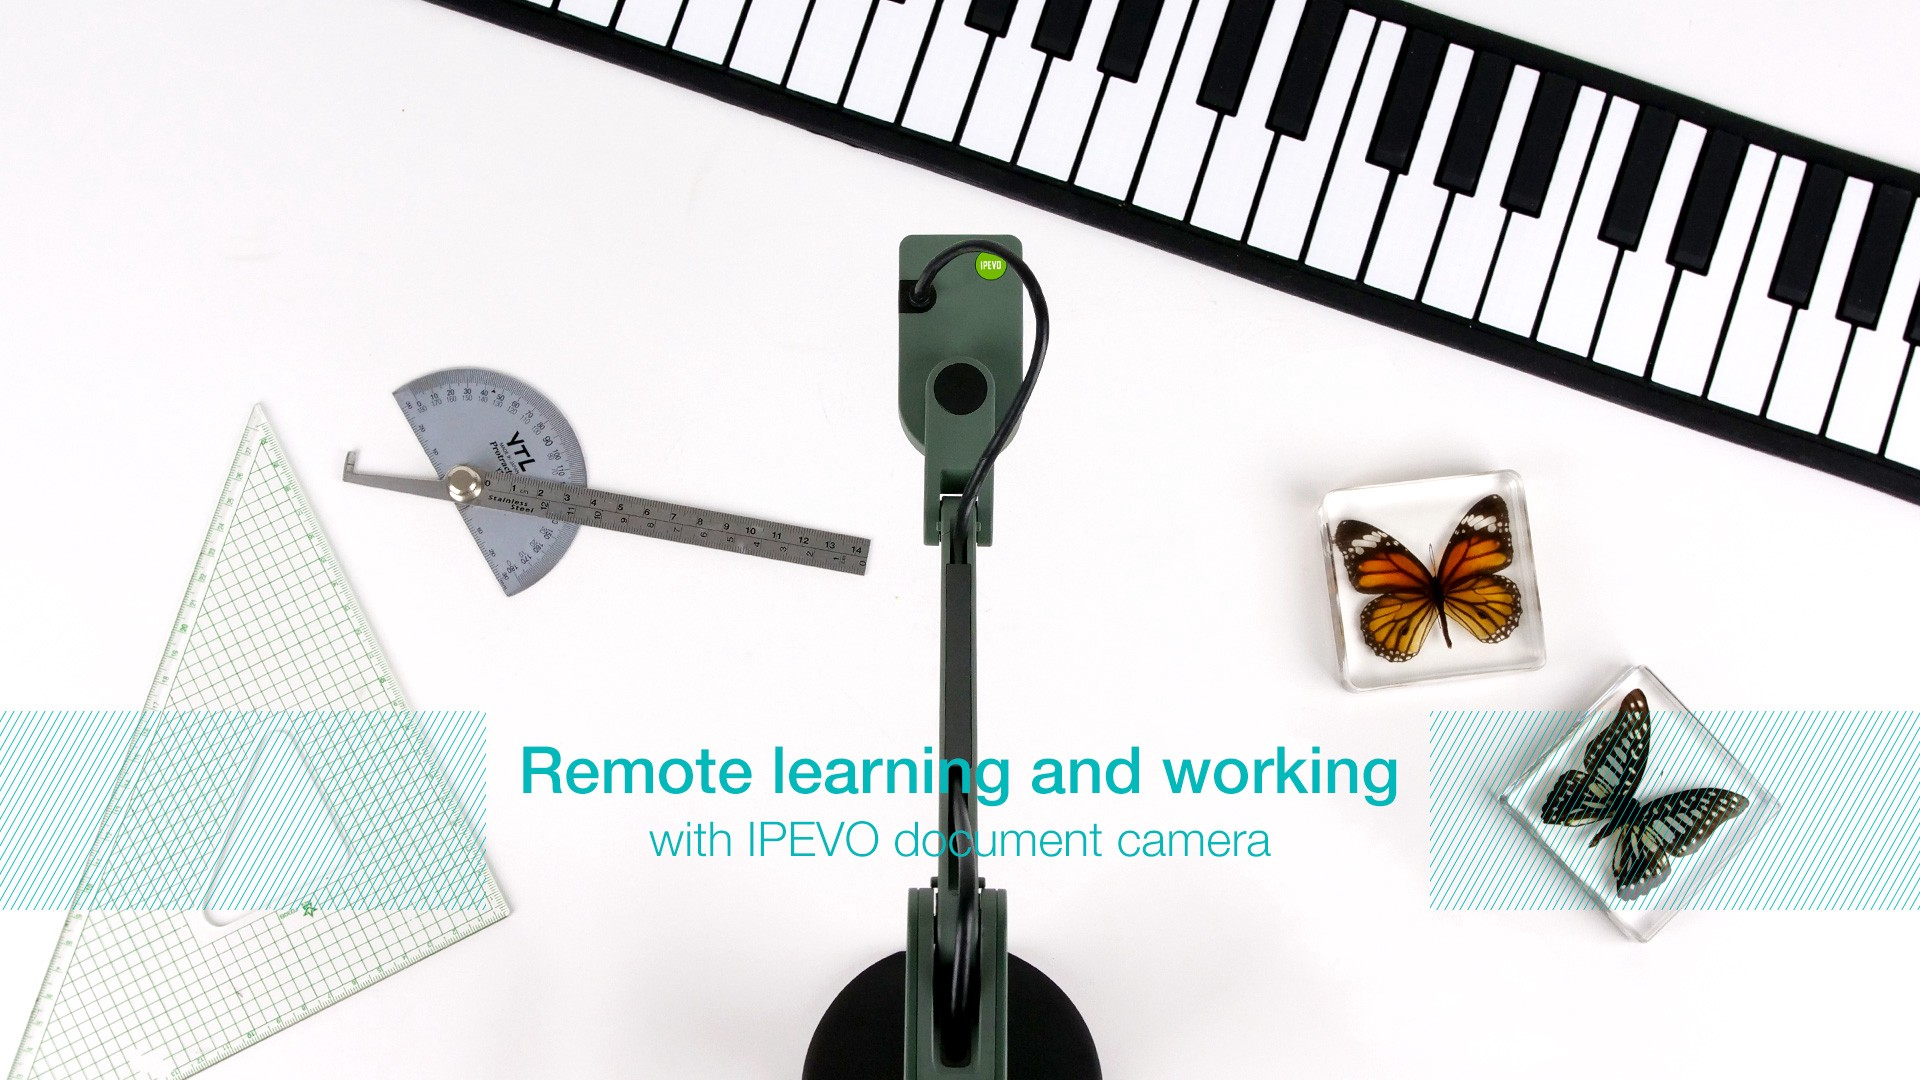 Ipevo Document camera e Lenovo tablet